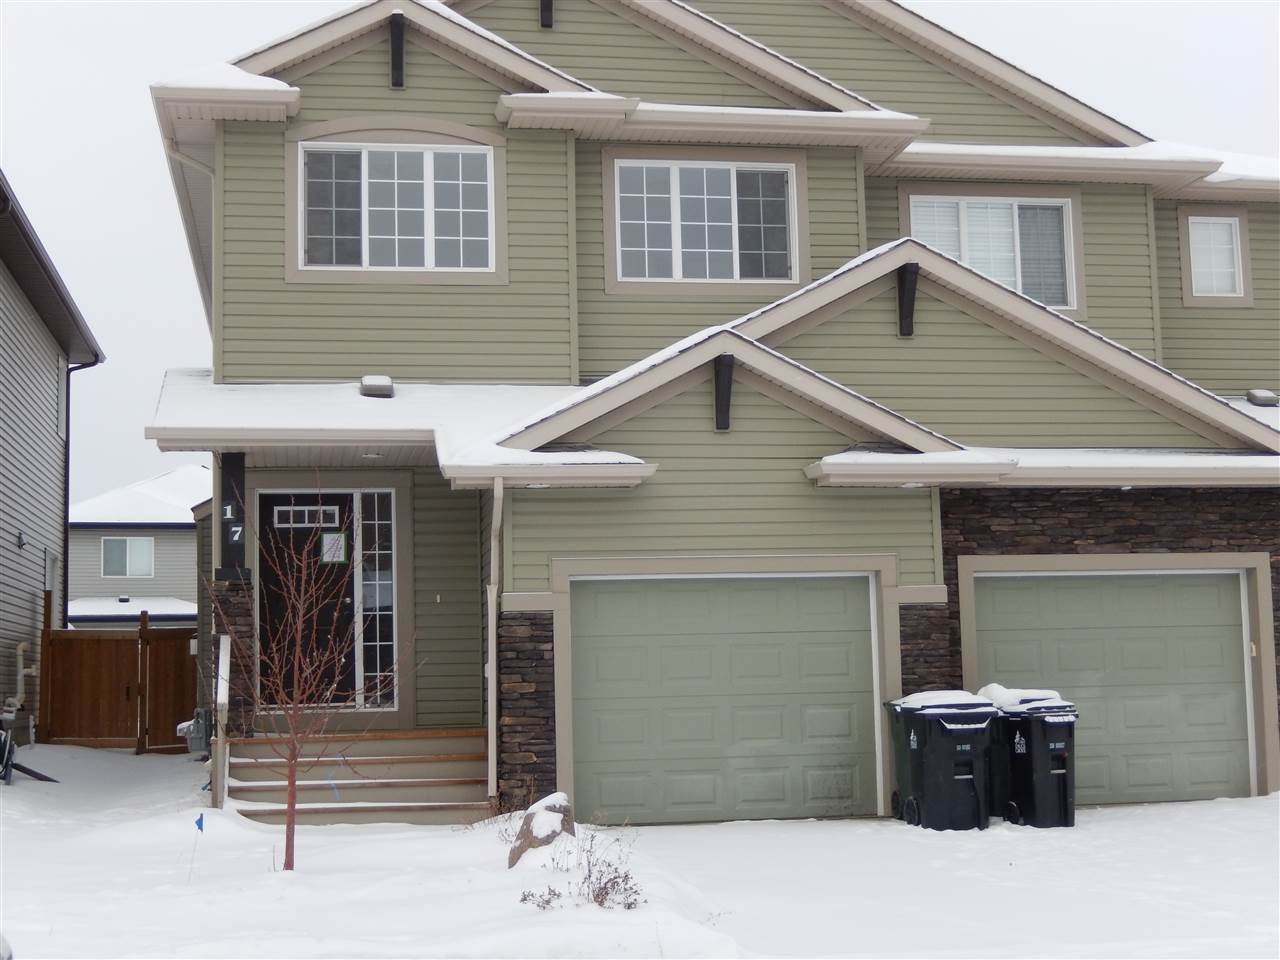 "GREAT LAYOUT & sits in a great location (no thru road)....very close to the TRI LEISURE CENTRE, RESTAURANTS, SUPERSTORE, CAR WASH & a KIDS PARK just a few doors down! This is a great neighborhood to raise a family.  On the MAIN FLOOR you can enjoy the BUILT IN GAS FIREPLACE with room for your TV above....open concept with lots of windows to brighten the KITCHEN, DINING ROOM & LIVING ROOM all with 9"" CEILINGS dressed up with POTLIGHTS.  There is a 2 piece bath and a ROOMY FRONT ENTRANCE.  Upstairs, you can enjoy the BONUS ROOM that you could set up as a TV ROOM, PLAYROOM or an OFFICE...there are 3 bedrooms and MAIN BATHR...the MASTR has a full ENSUITE & WALK IN CLOSET.  The front of the house is SOUTH FACING.  This home needs some TLC ....paint & flooring would dress it right up!! For a panaramic view or room measurements (DETAILS) click VIRTUAL TOUR link."